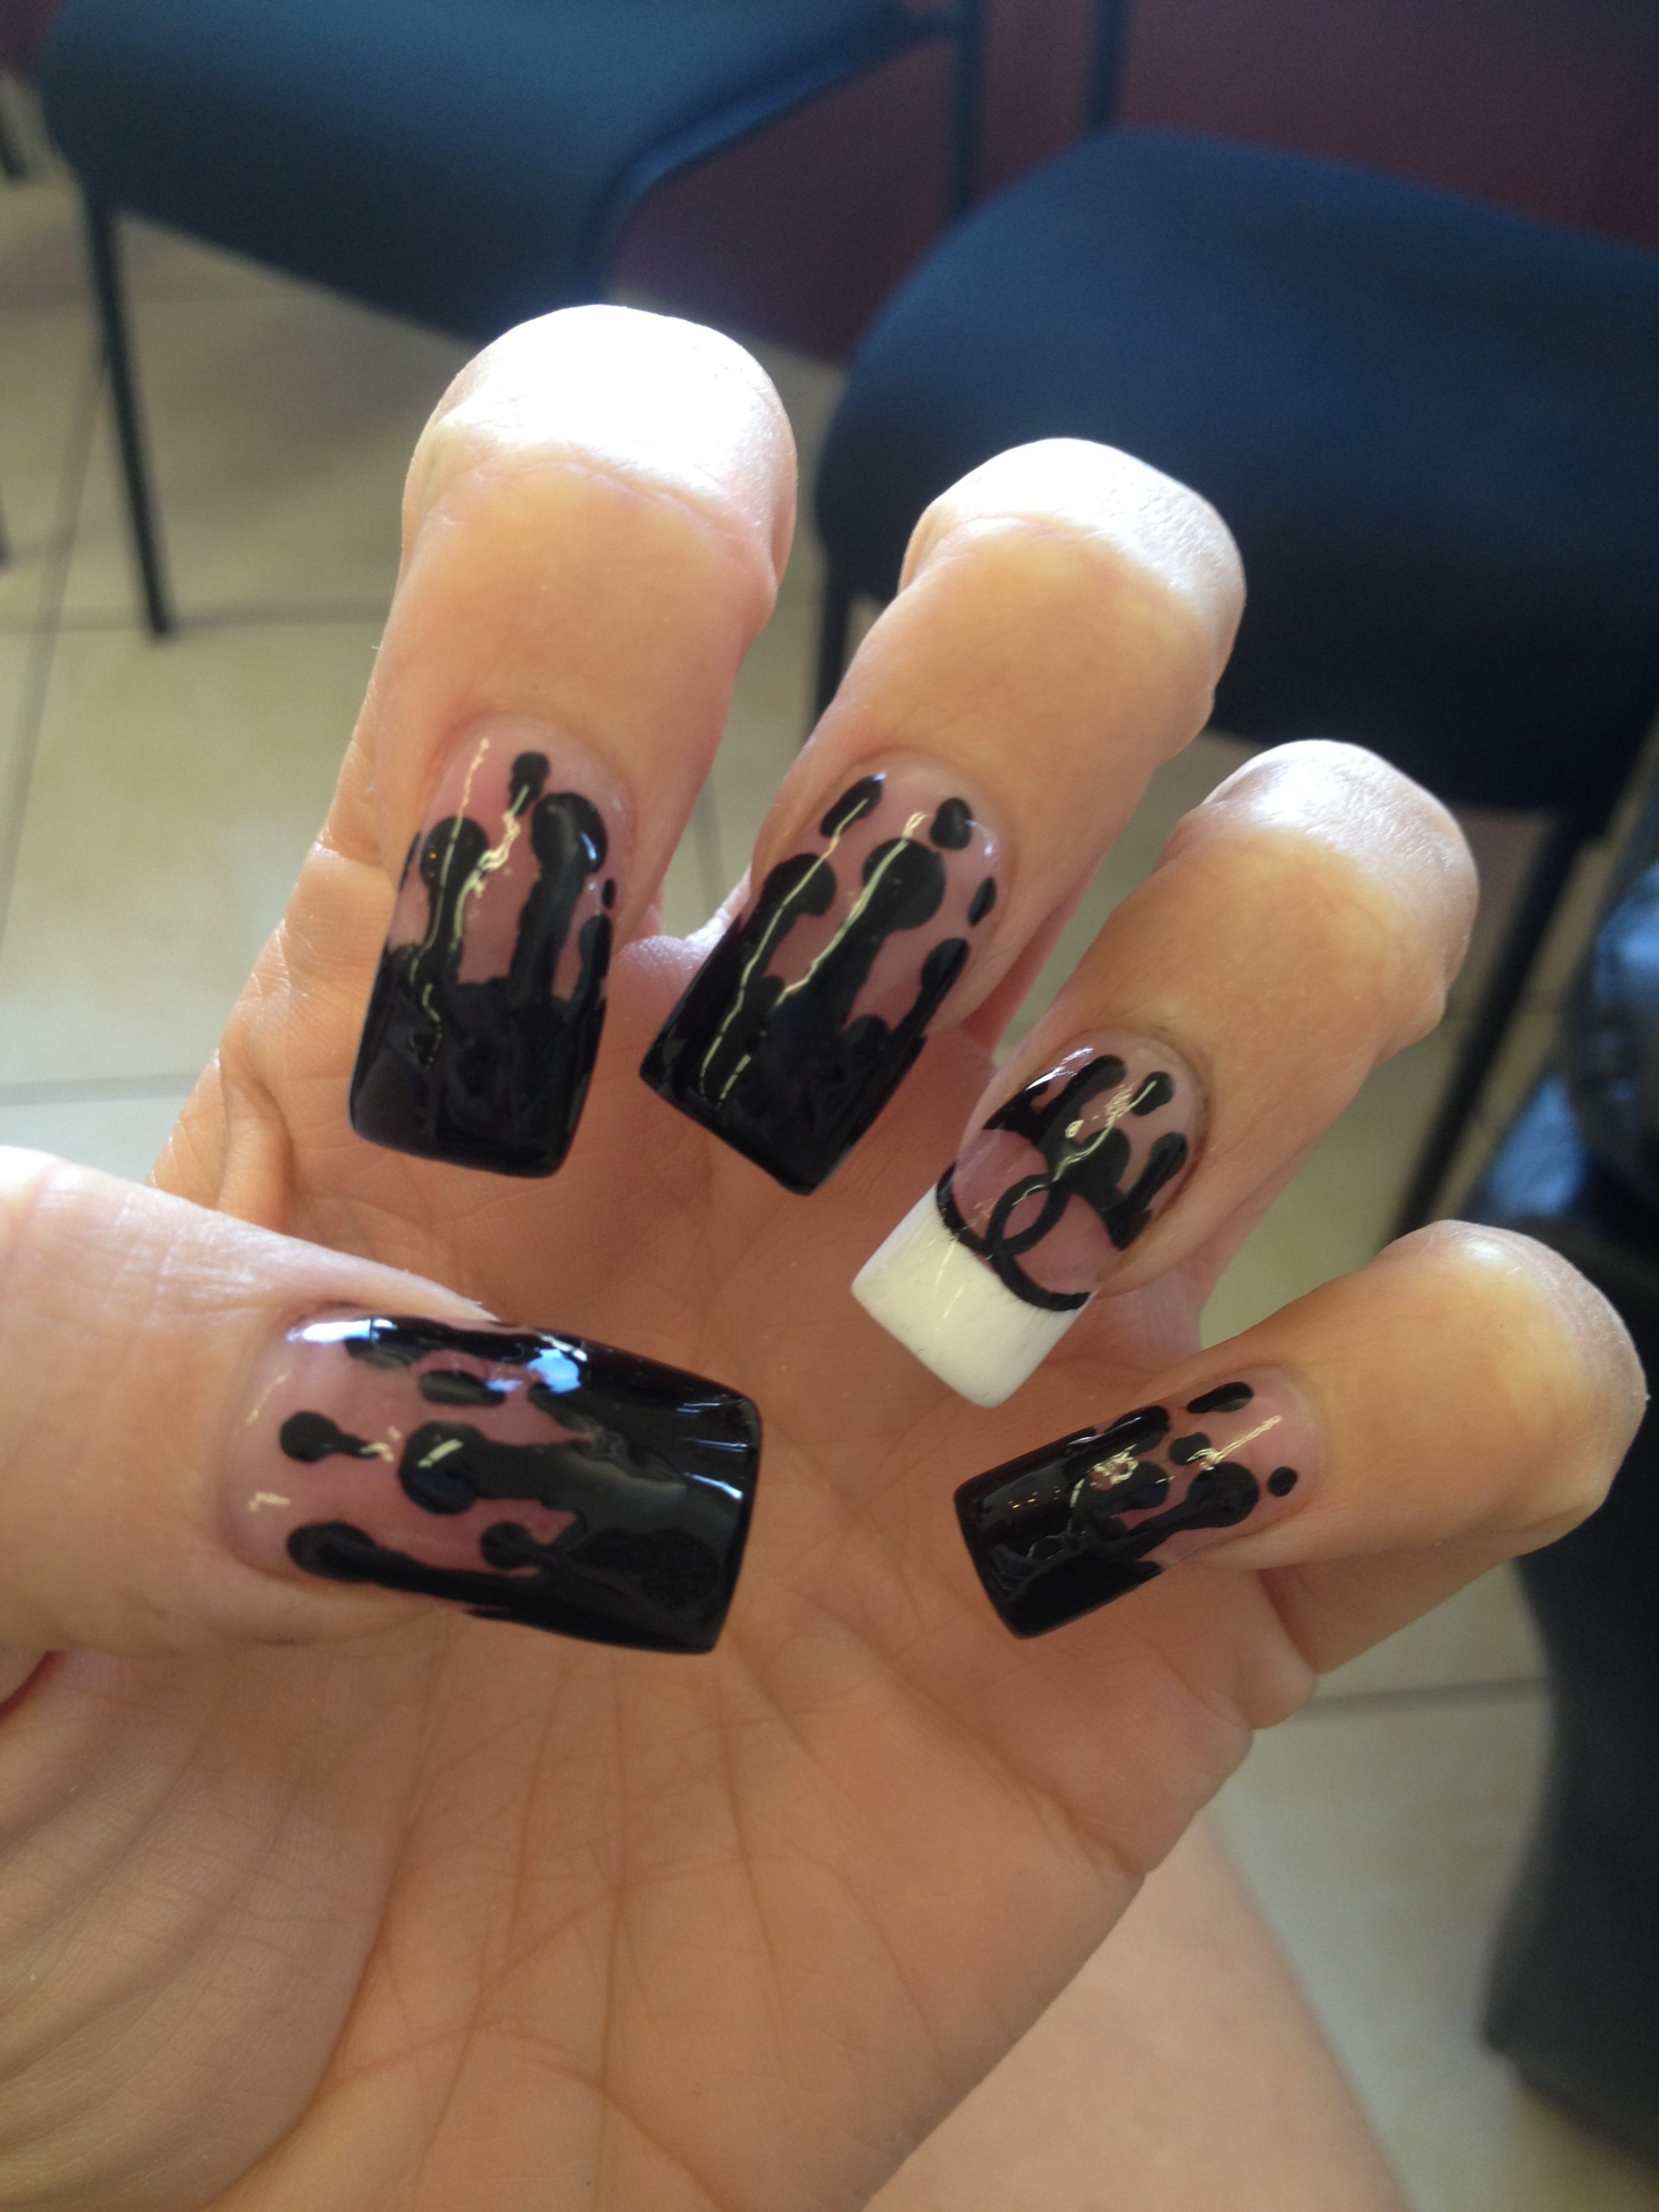 Chanel nail design pretty pinterest chanel nails design chanel nail design prinsesfo Image collections